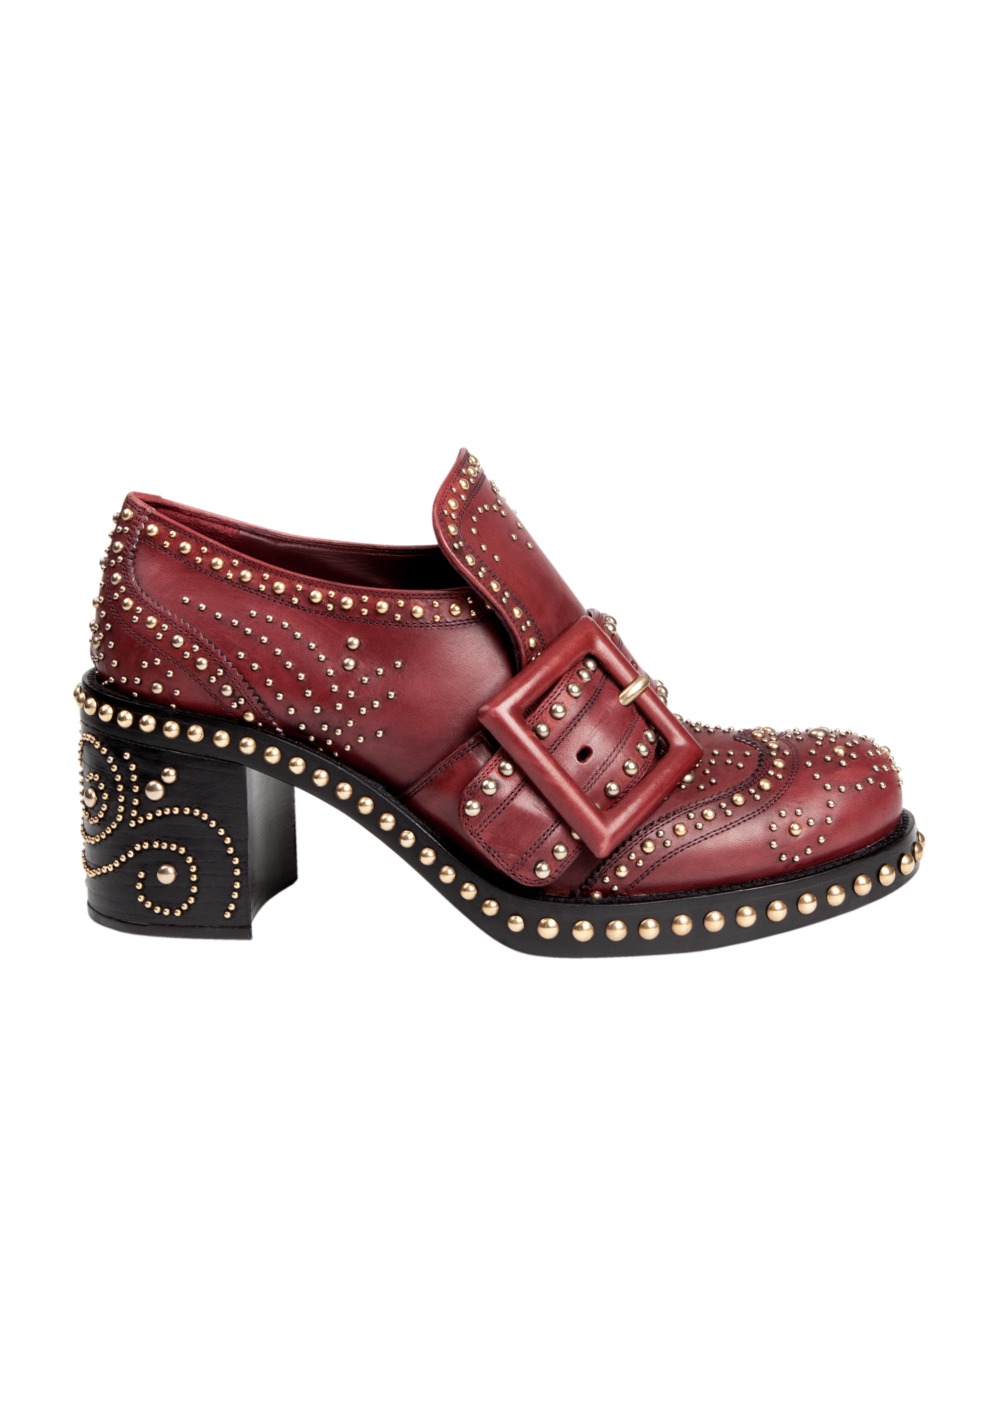 miumiu-shoes-redstud-16.png